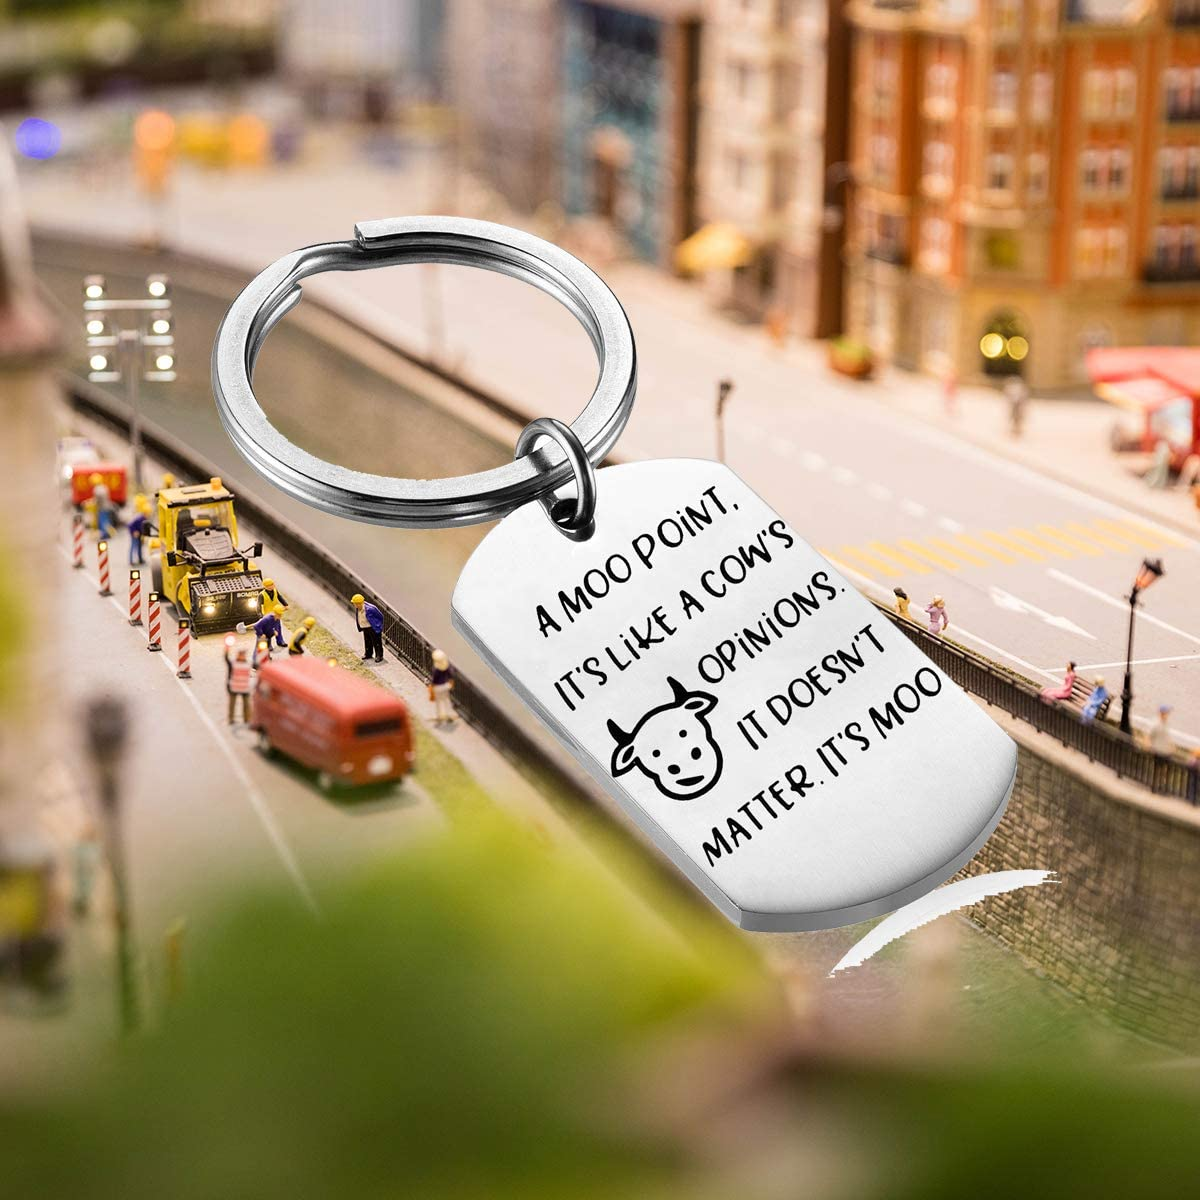 A Moo Point It/'s Like a Cow/'s Opinions Gift Friends TV Show Joey Quote Funny Keychain Gift for Friends Fans